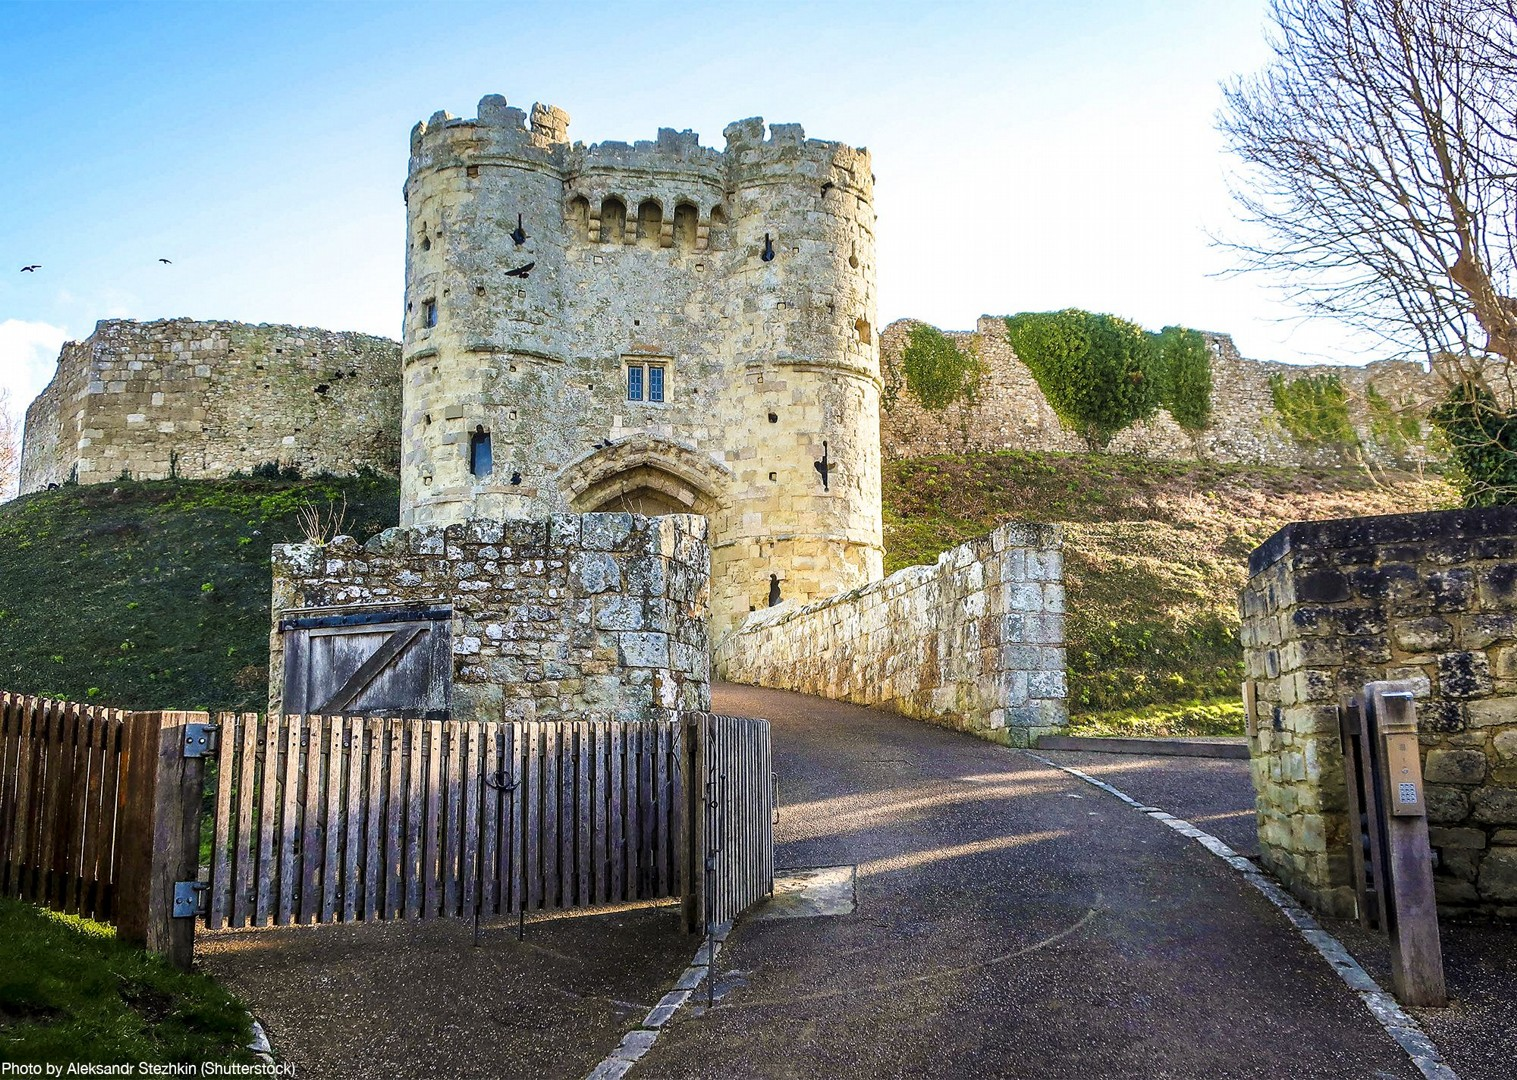 carisbrooke-castle-isle-of-wight-discover-culture-cycling-tour.jpg - UK - Isle of Wight - Freshwater Bay - Self-Guided Leisure Cycling Holiday - Leisure Cycling